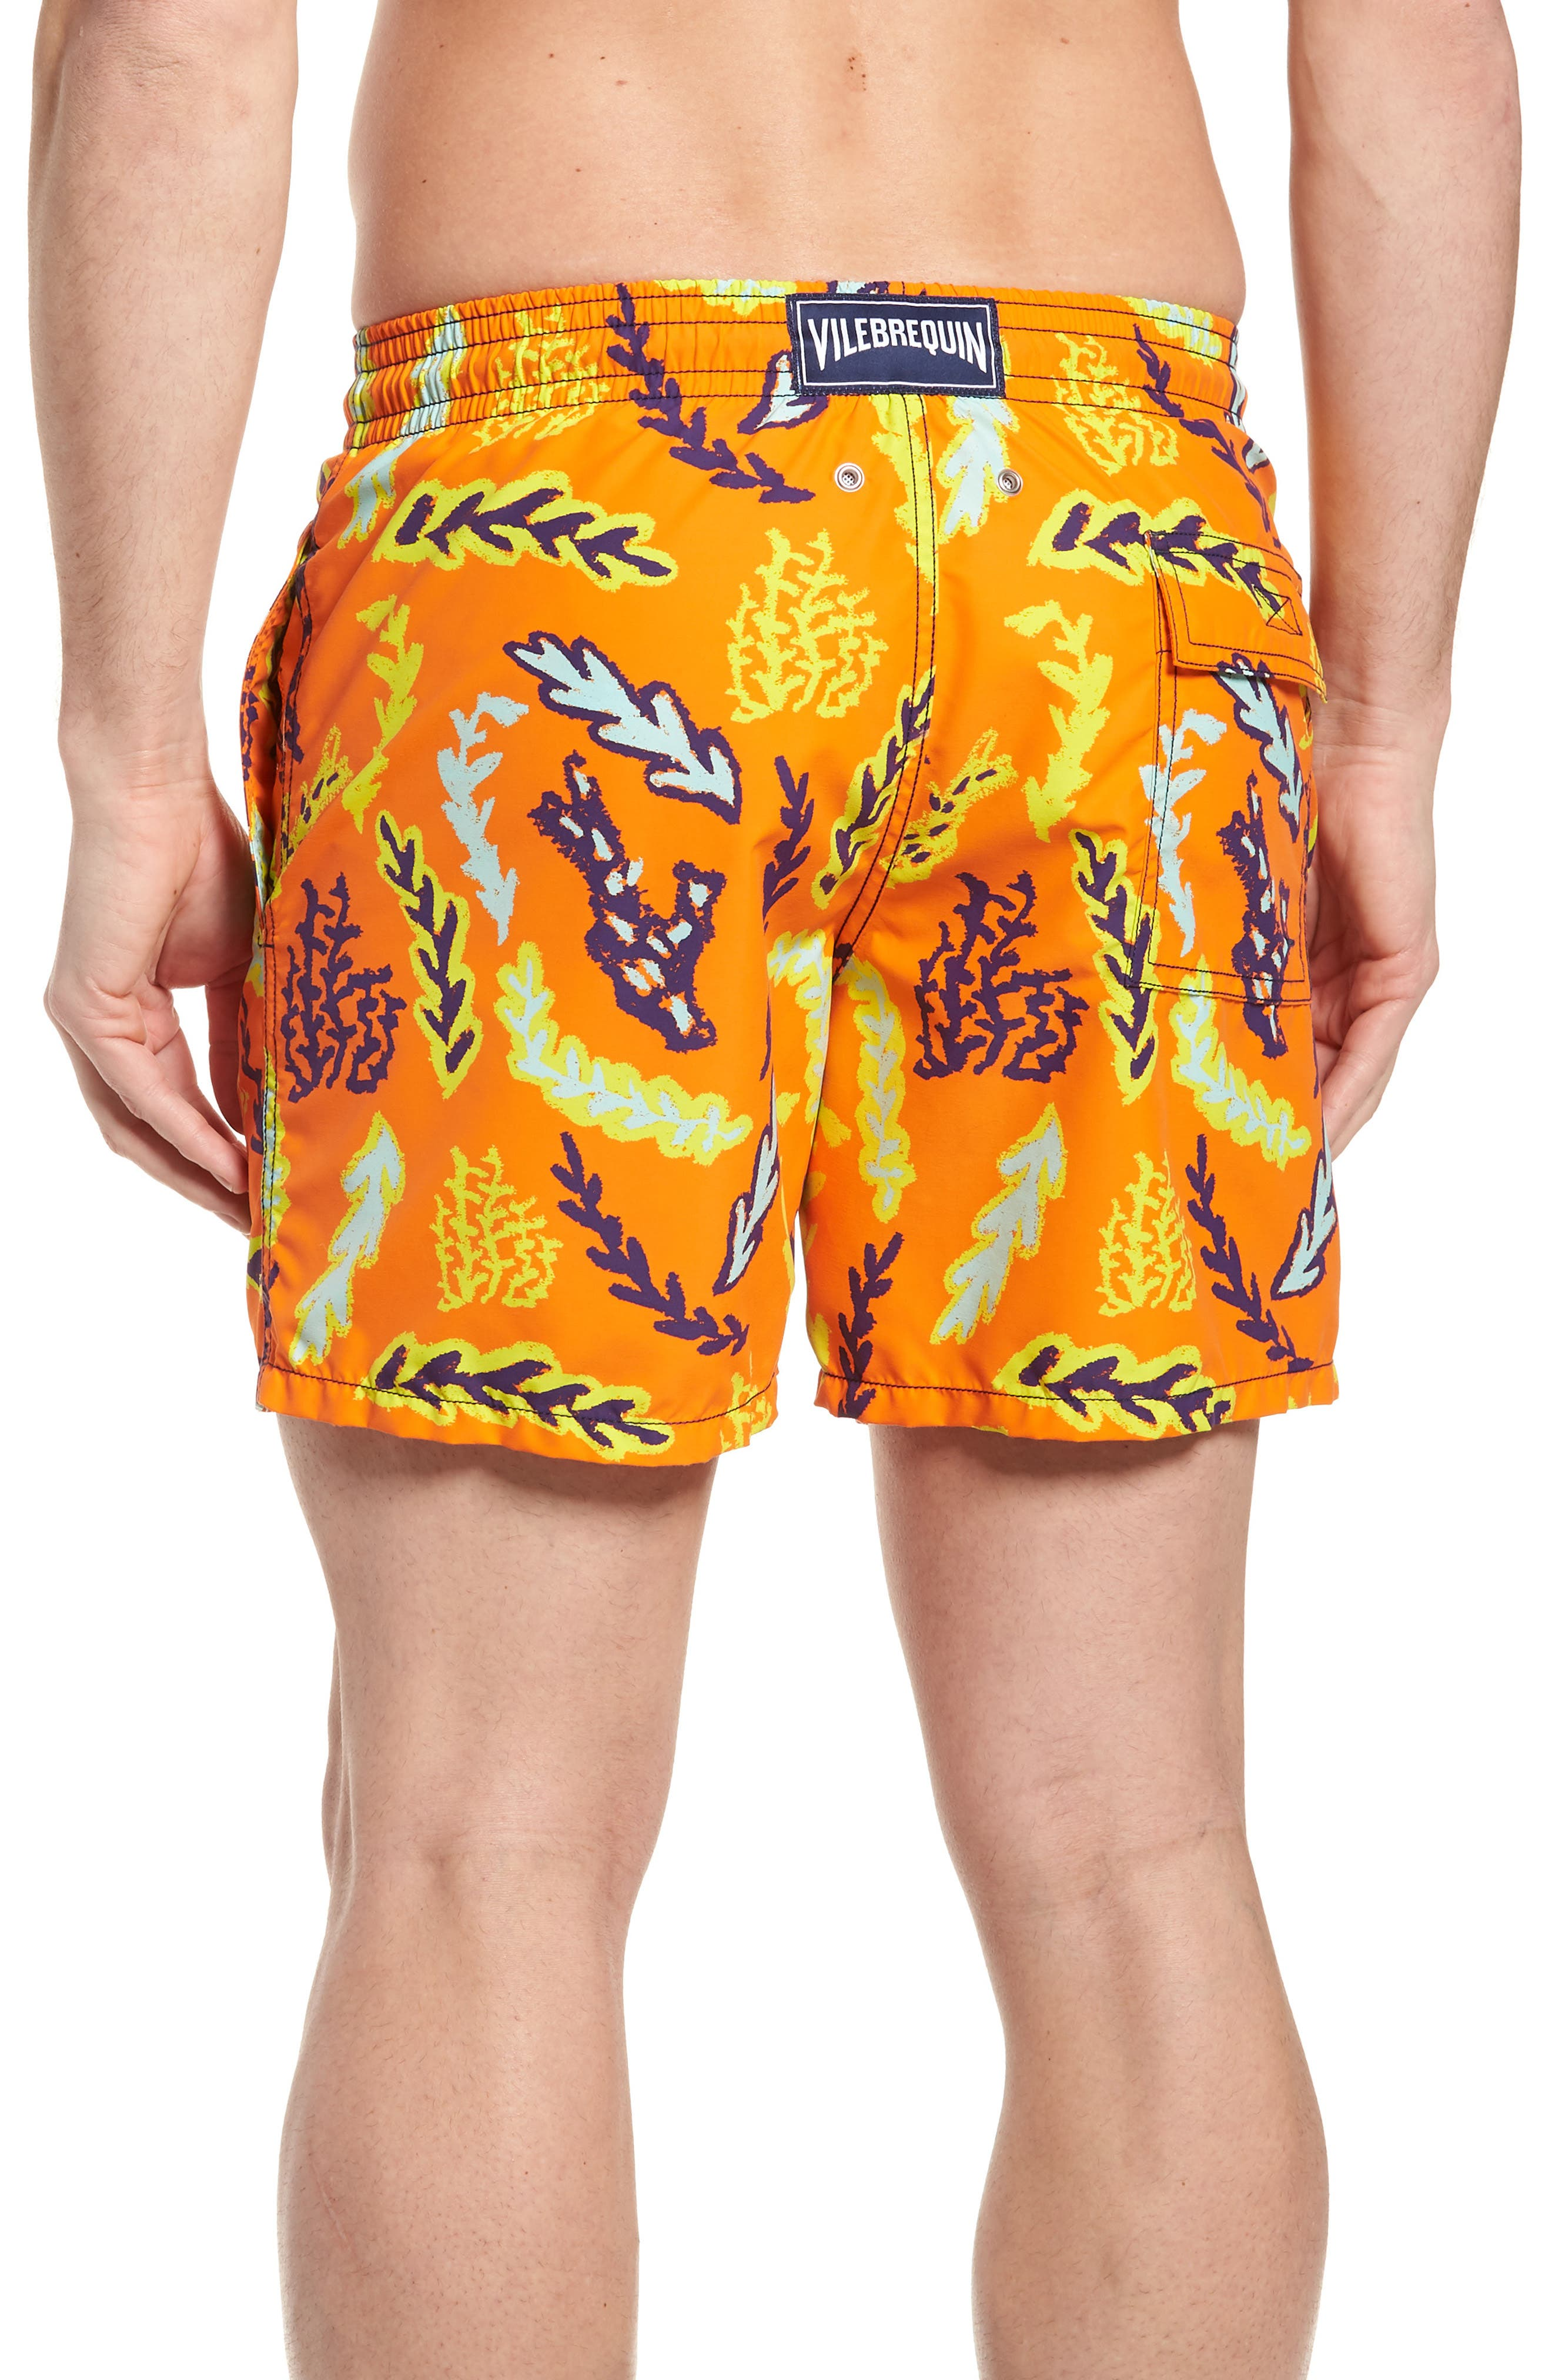 Solar Seaweed Print Swim Trunks,                             Alternate thumbnail 2, color,                             812